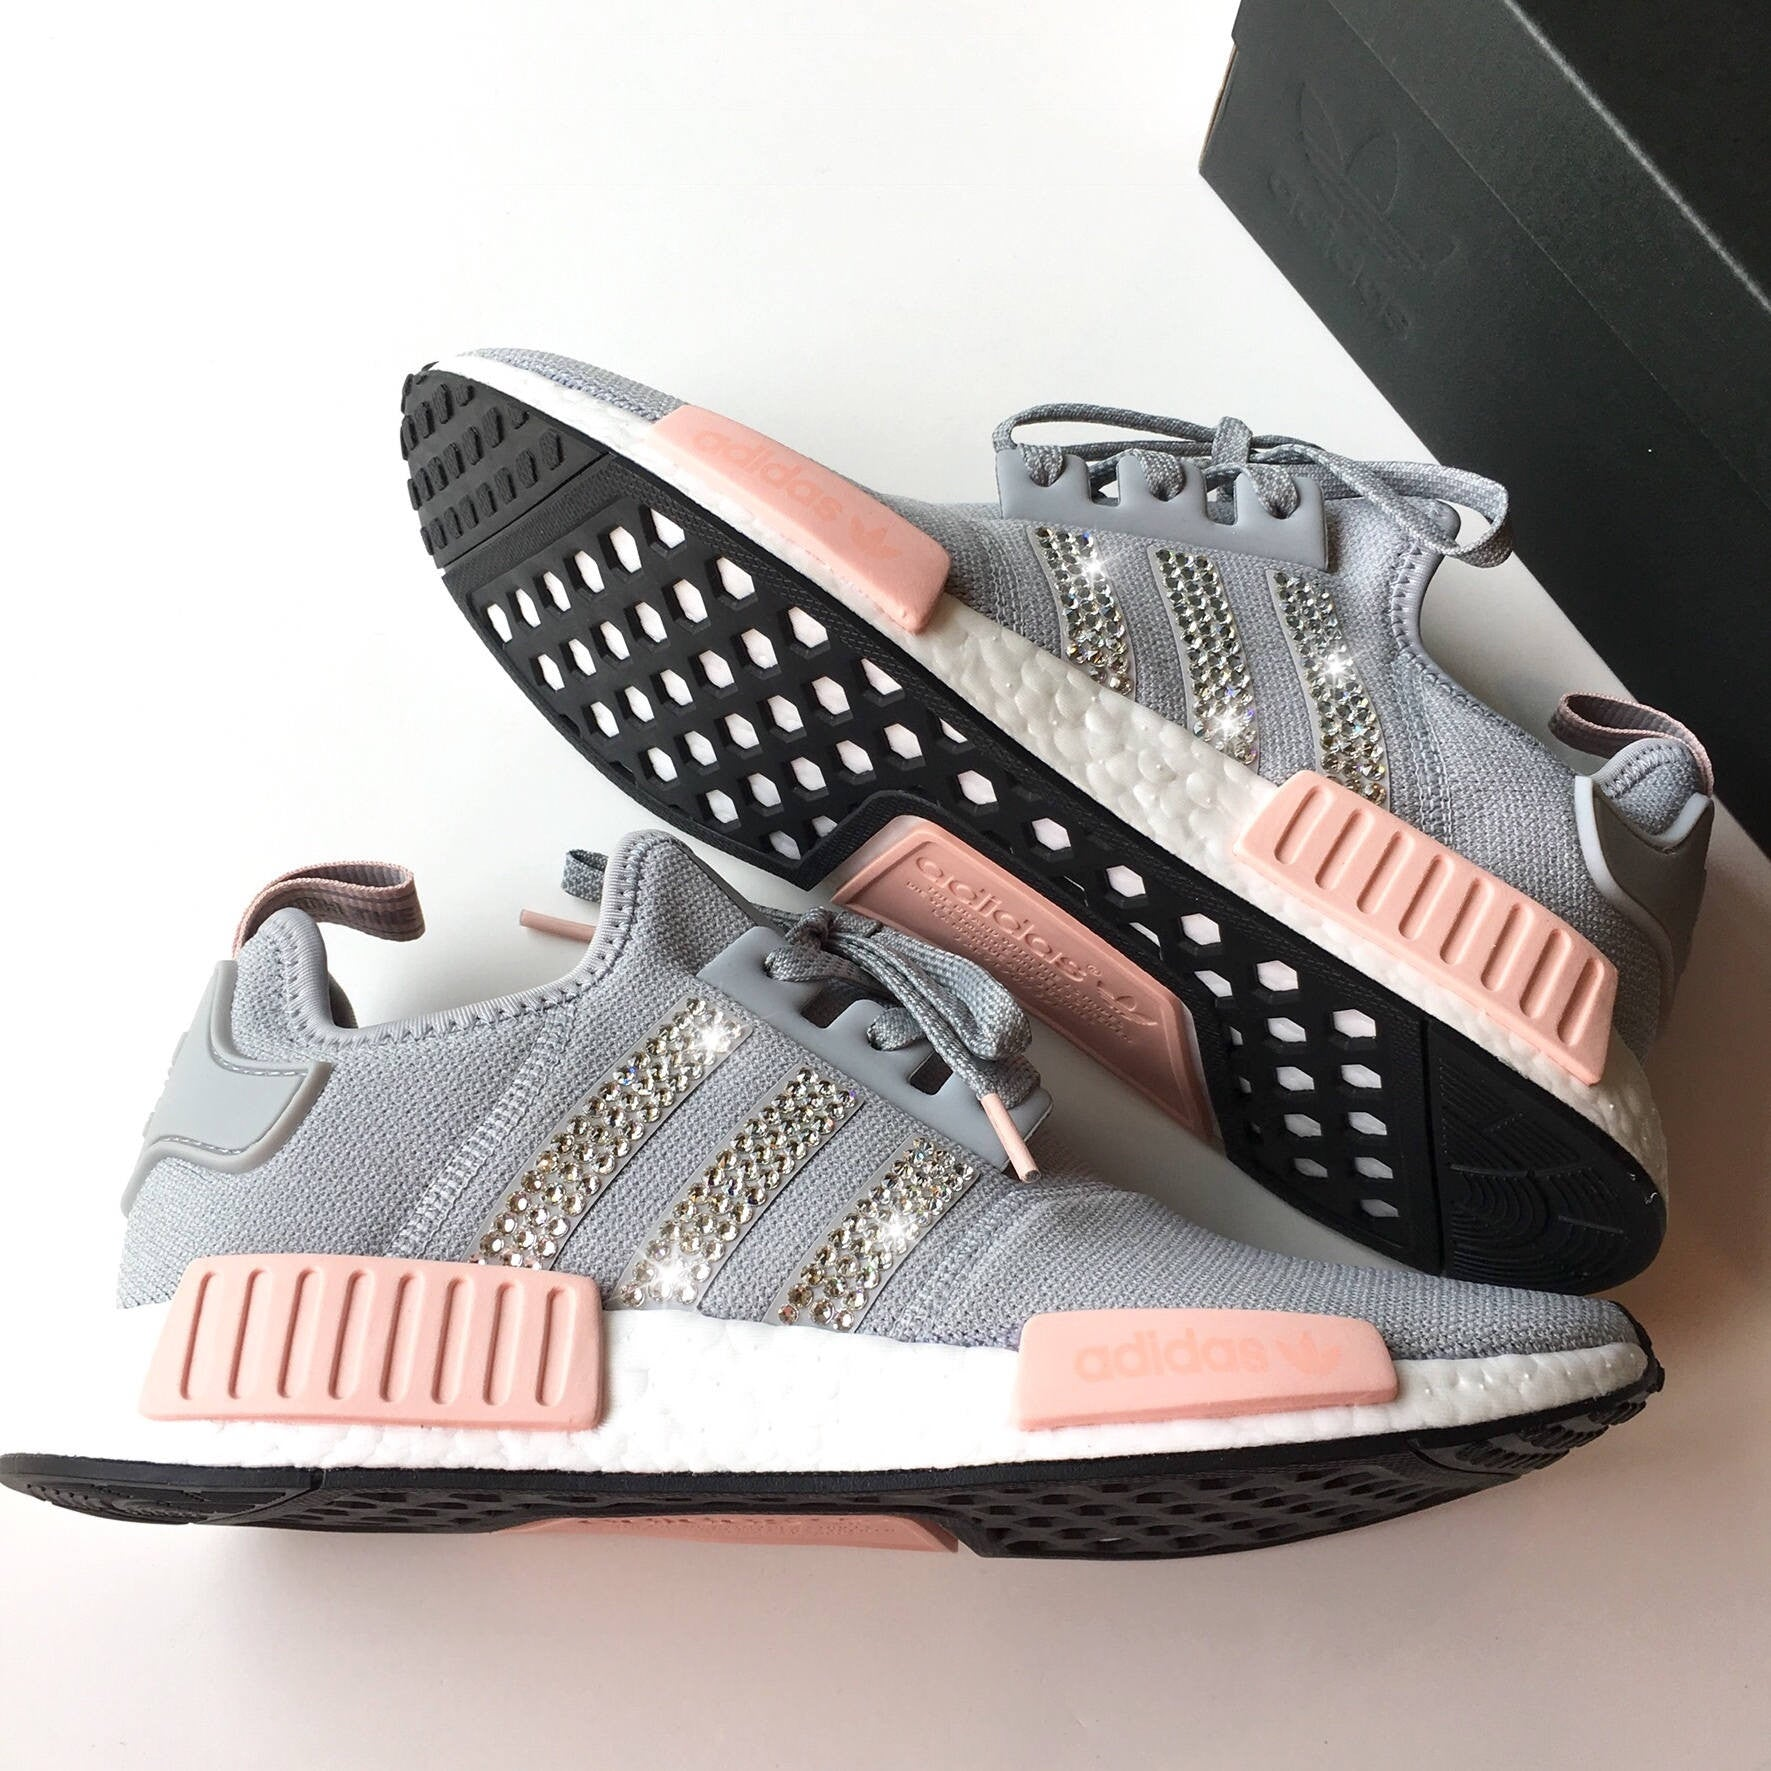 f0b5fa414 NEW Bling Adidas NMD with Swarovski Crystals   Women s Originals NMD R1  Runners Casual Shoes   Grey